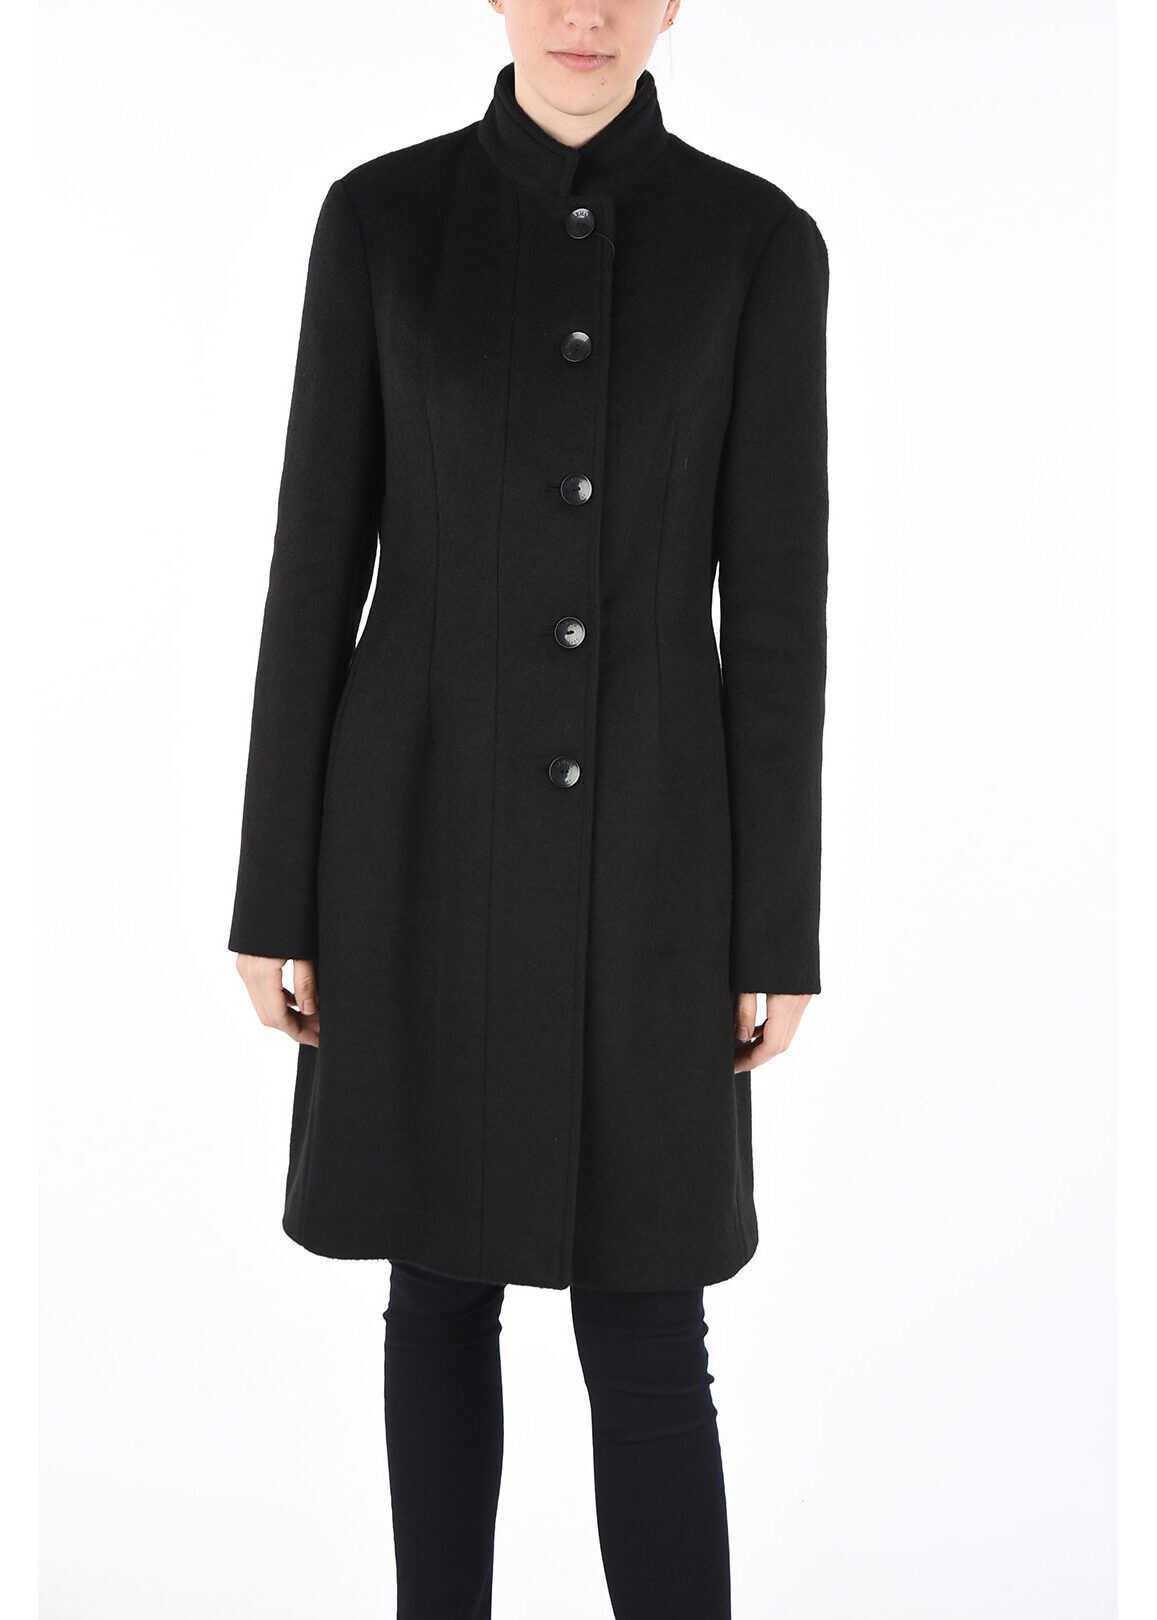 Armani ARMANI JEANS Wool Blend Coat BLACK